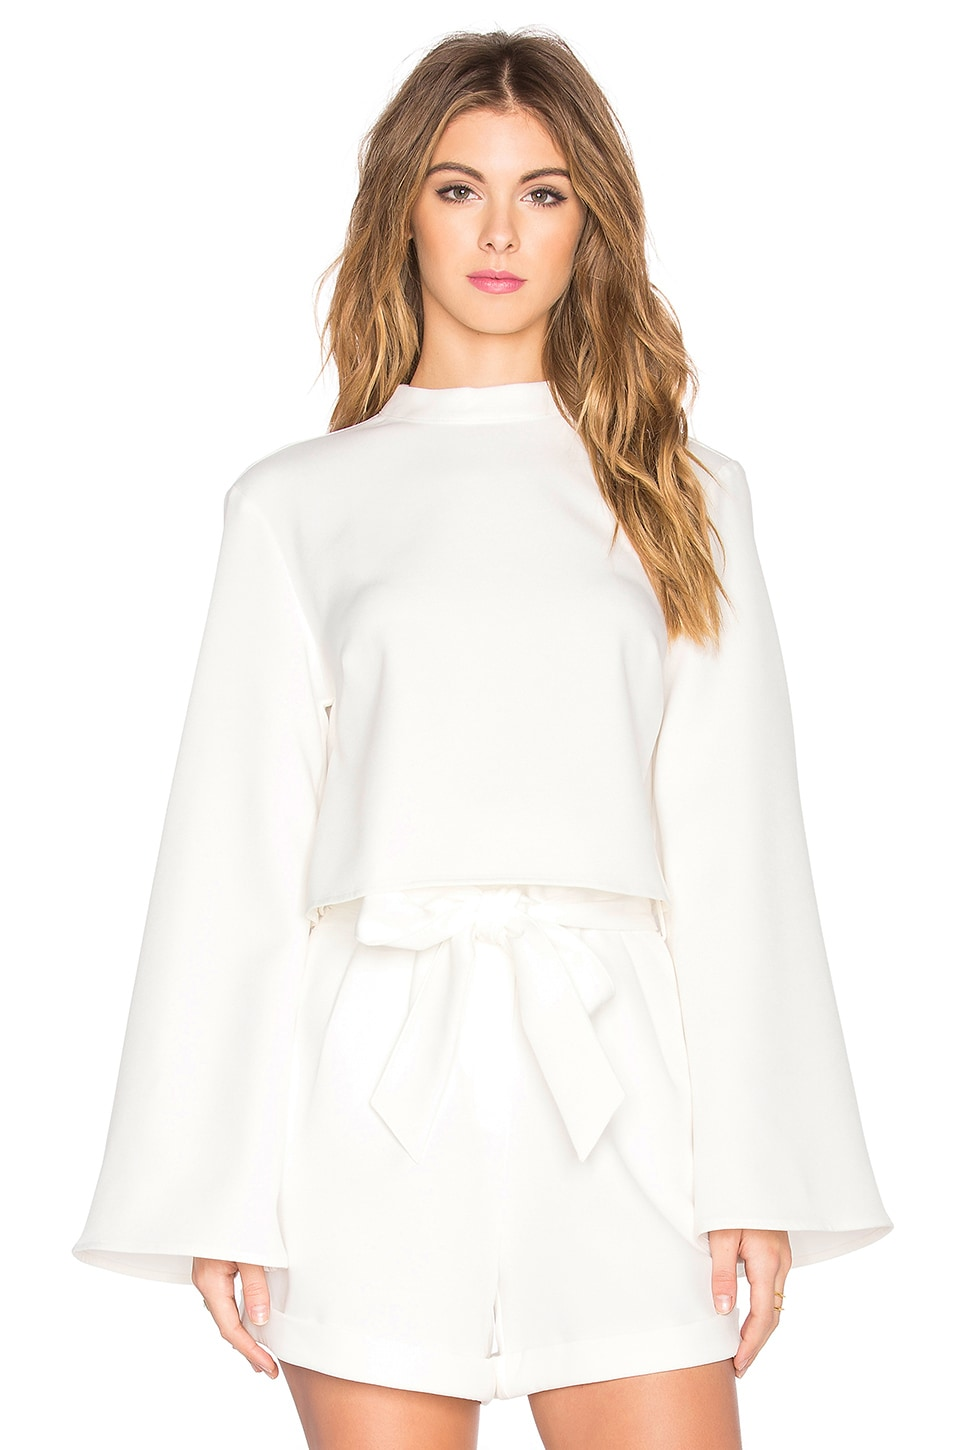 The Fifth Label Stay Awhile Long Sleeve Top in Ivory